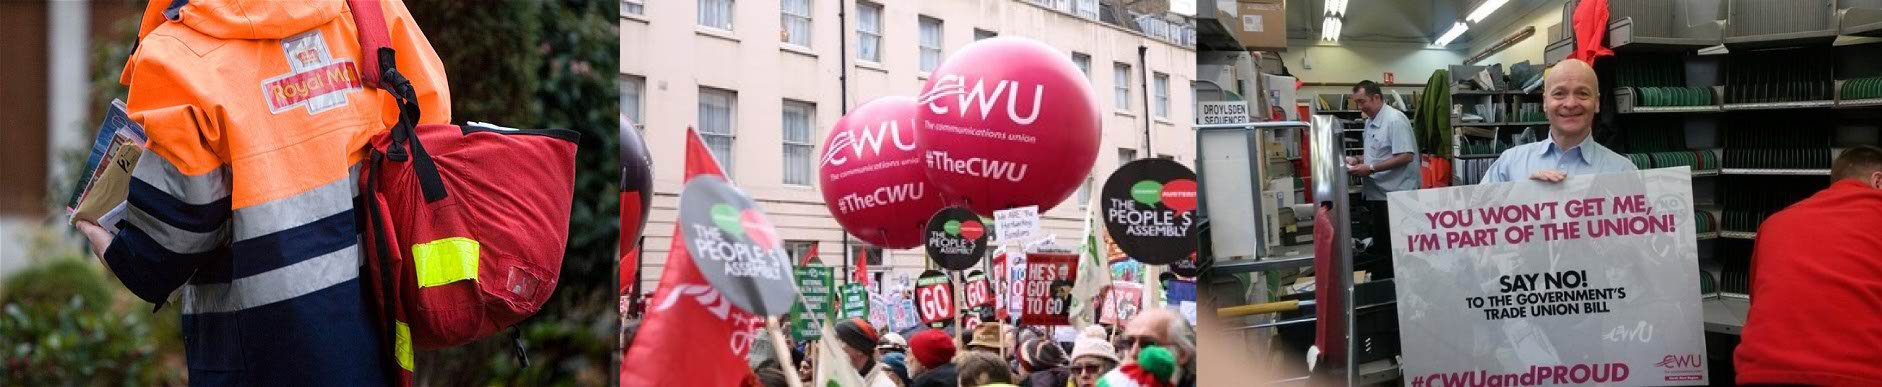 CWU Greater Manchester Branch